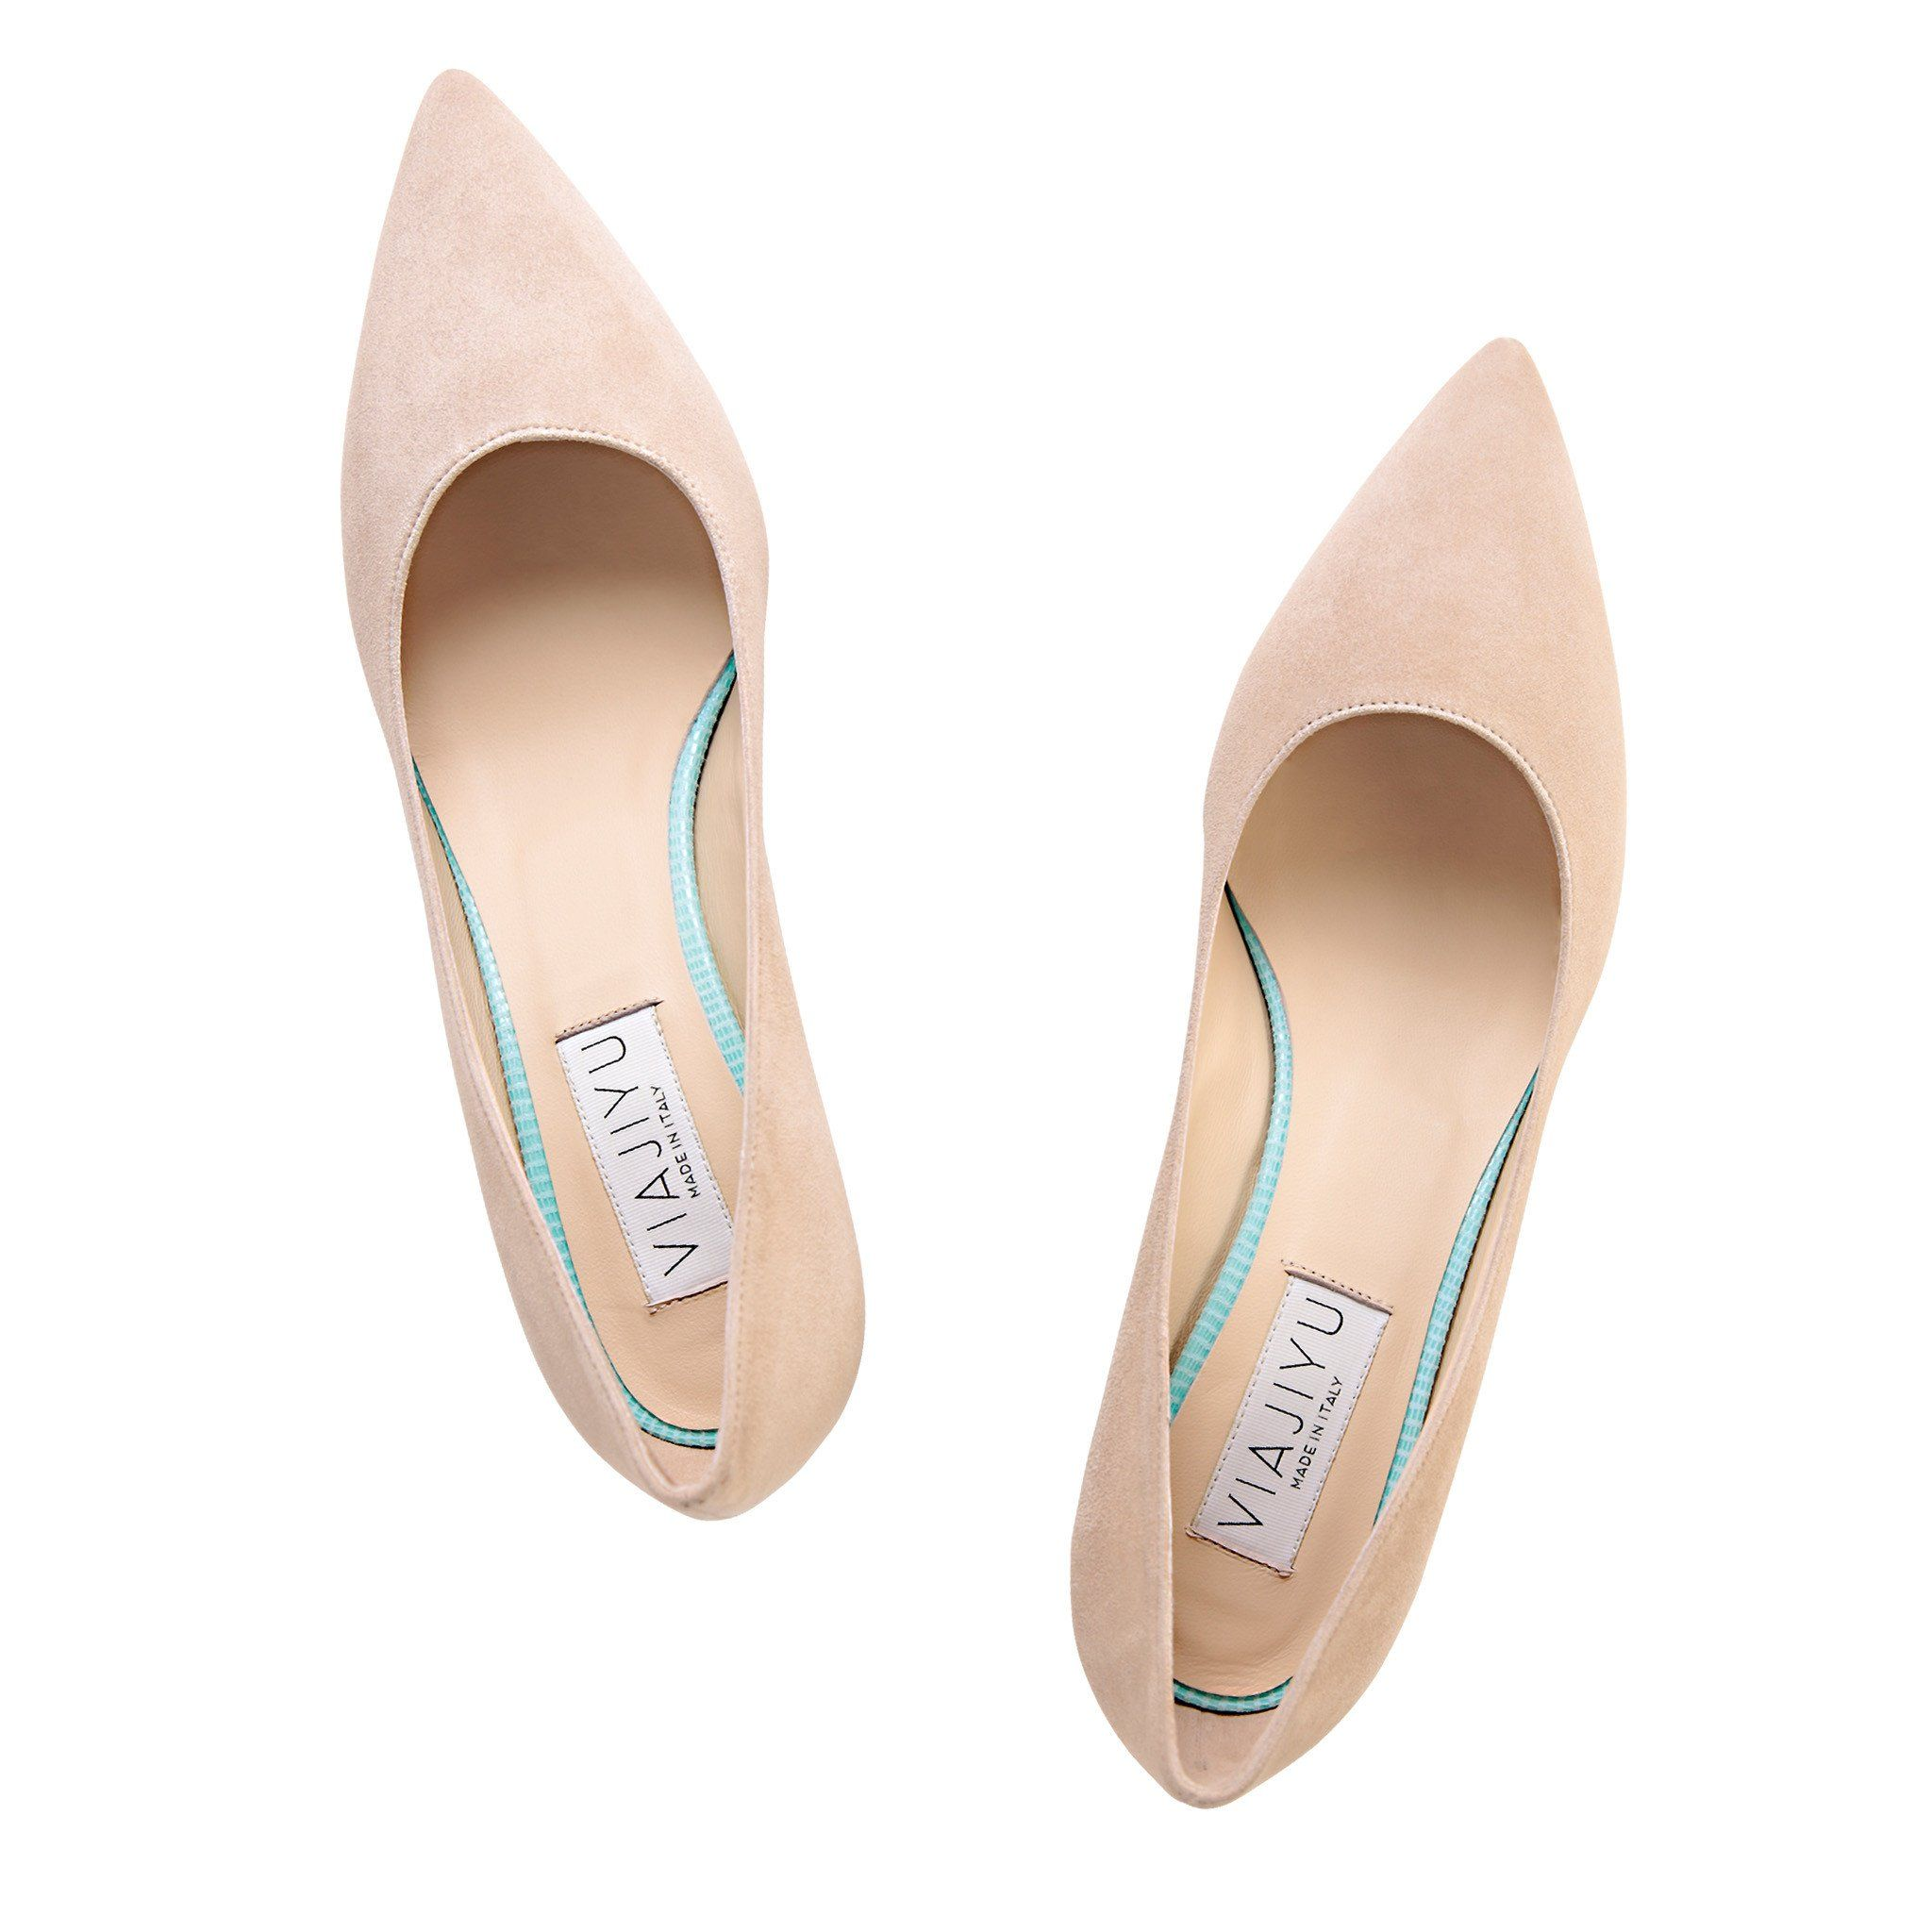 49d660263a7aa6 Pointed Toe Wedge - Velukid Tan with Varanus Mint Wedge, Handmade in Italy  --next-- VIAJIYU's Trento is the latest pointed toe style in our collection.